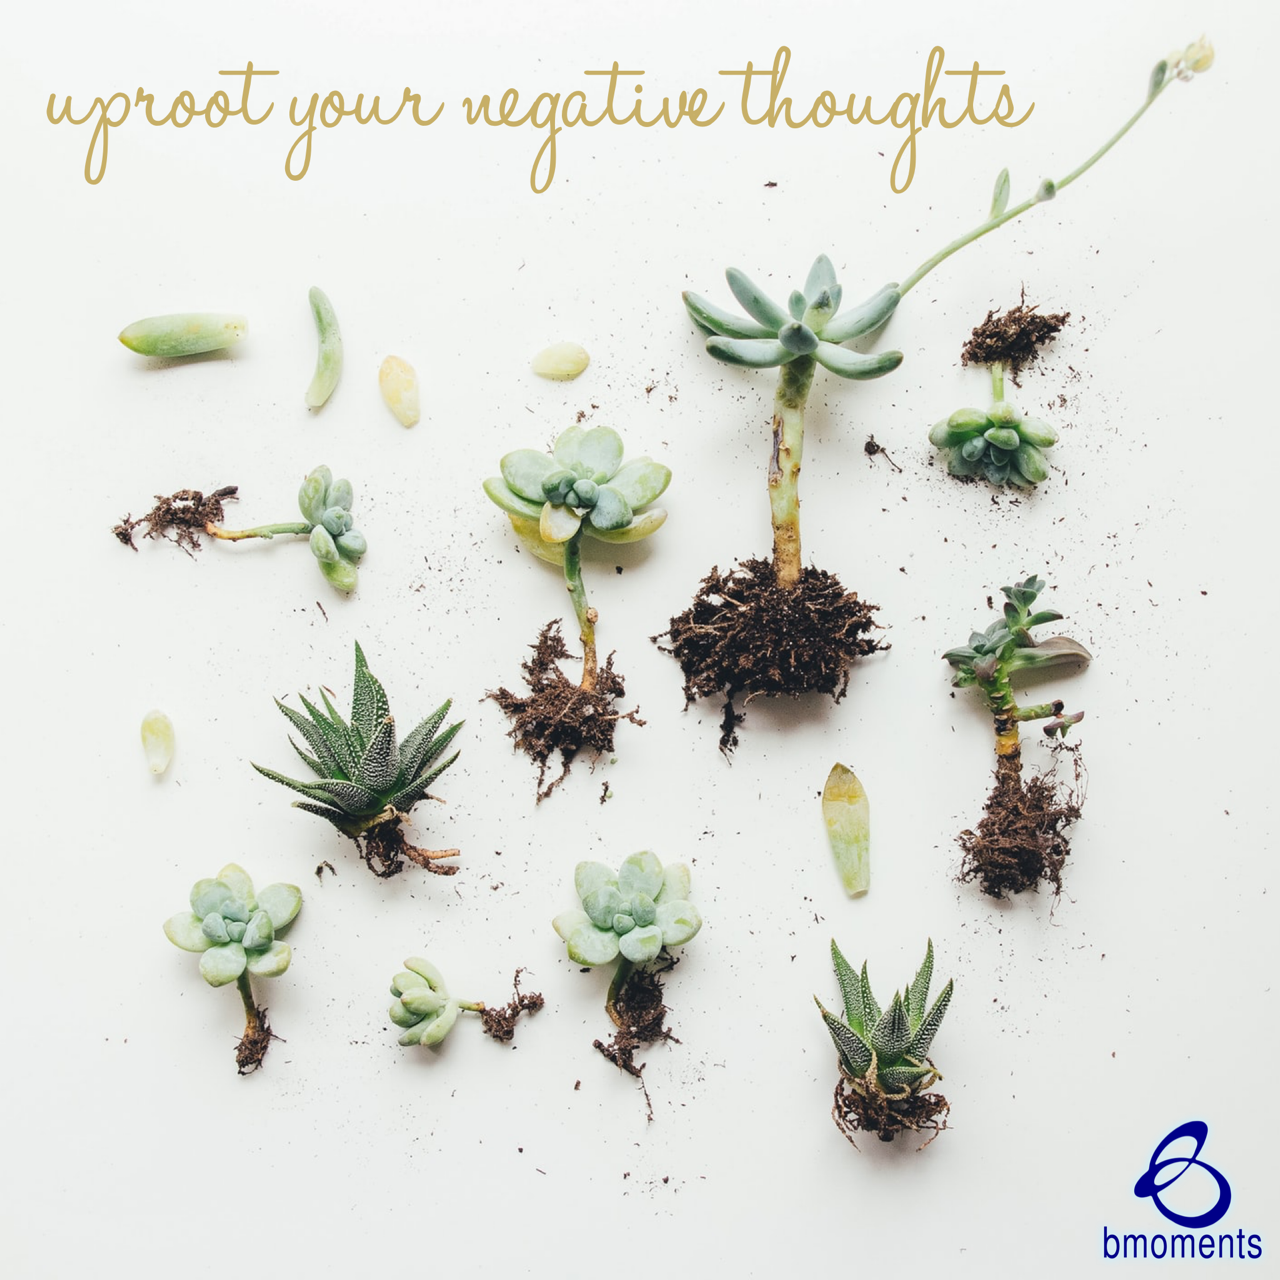 Uproot the Negative Thoughts Ingrained in Your Mindset